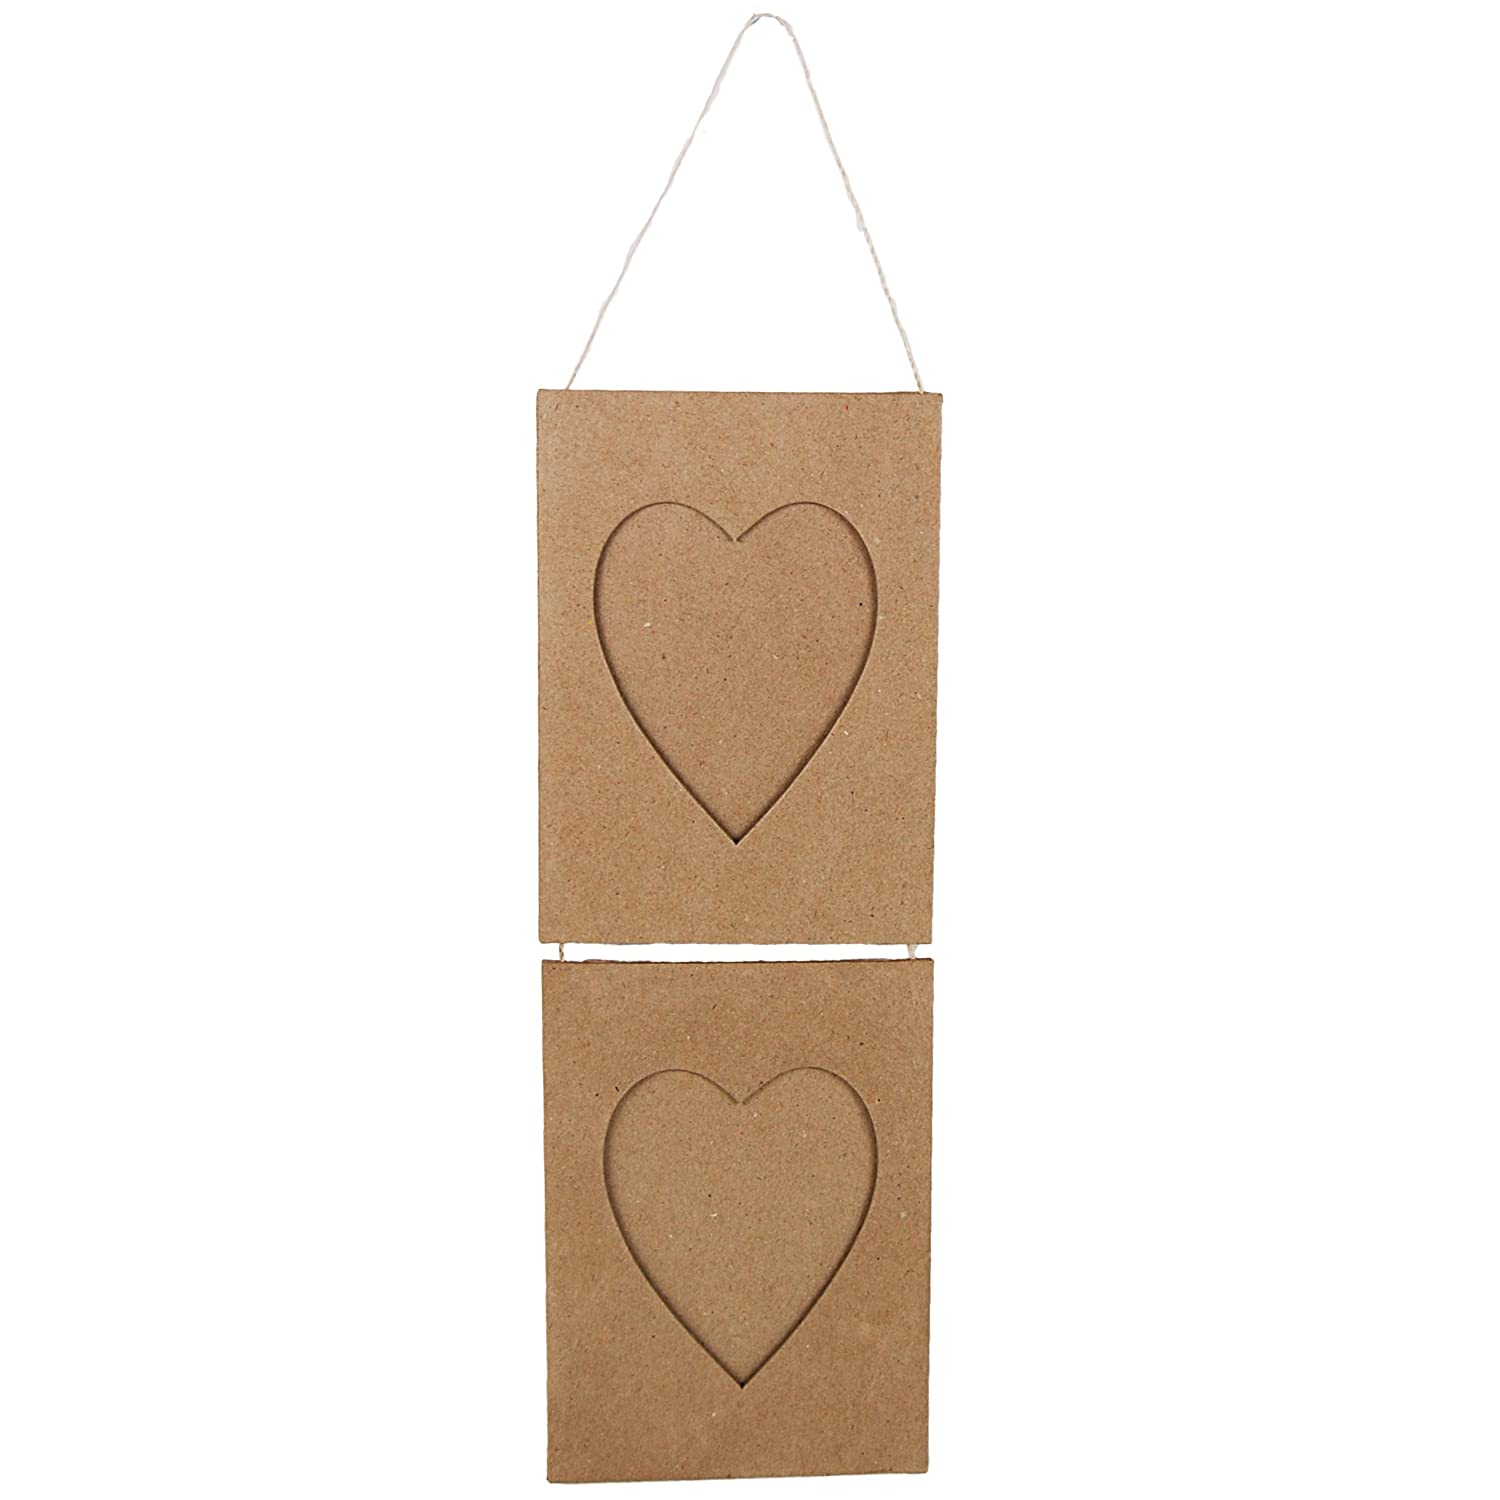 Country Love Crafts Hanging Heart Frames Papier Mache CLSNGP1146